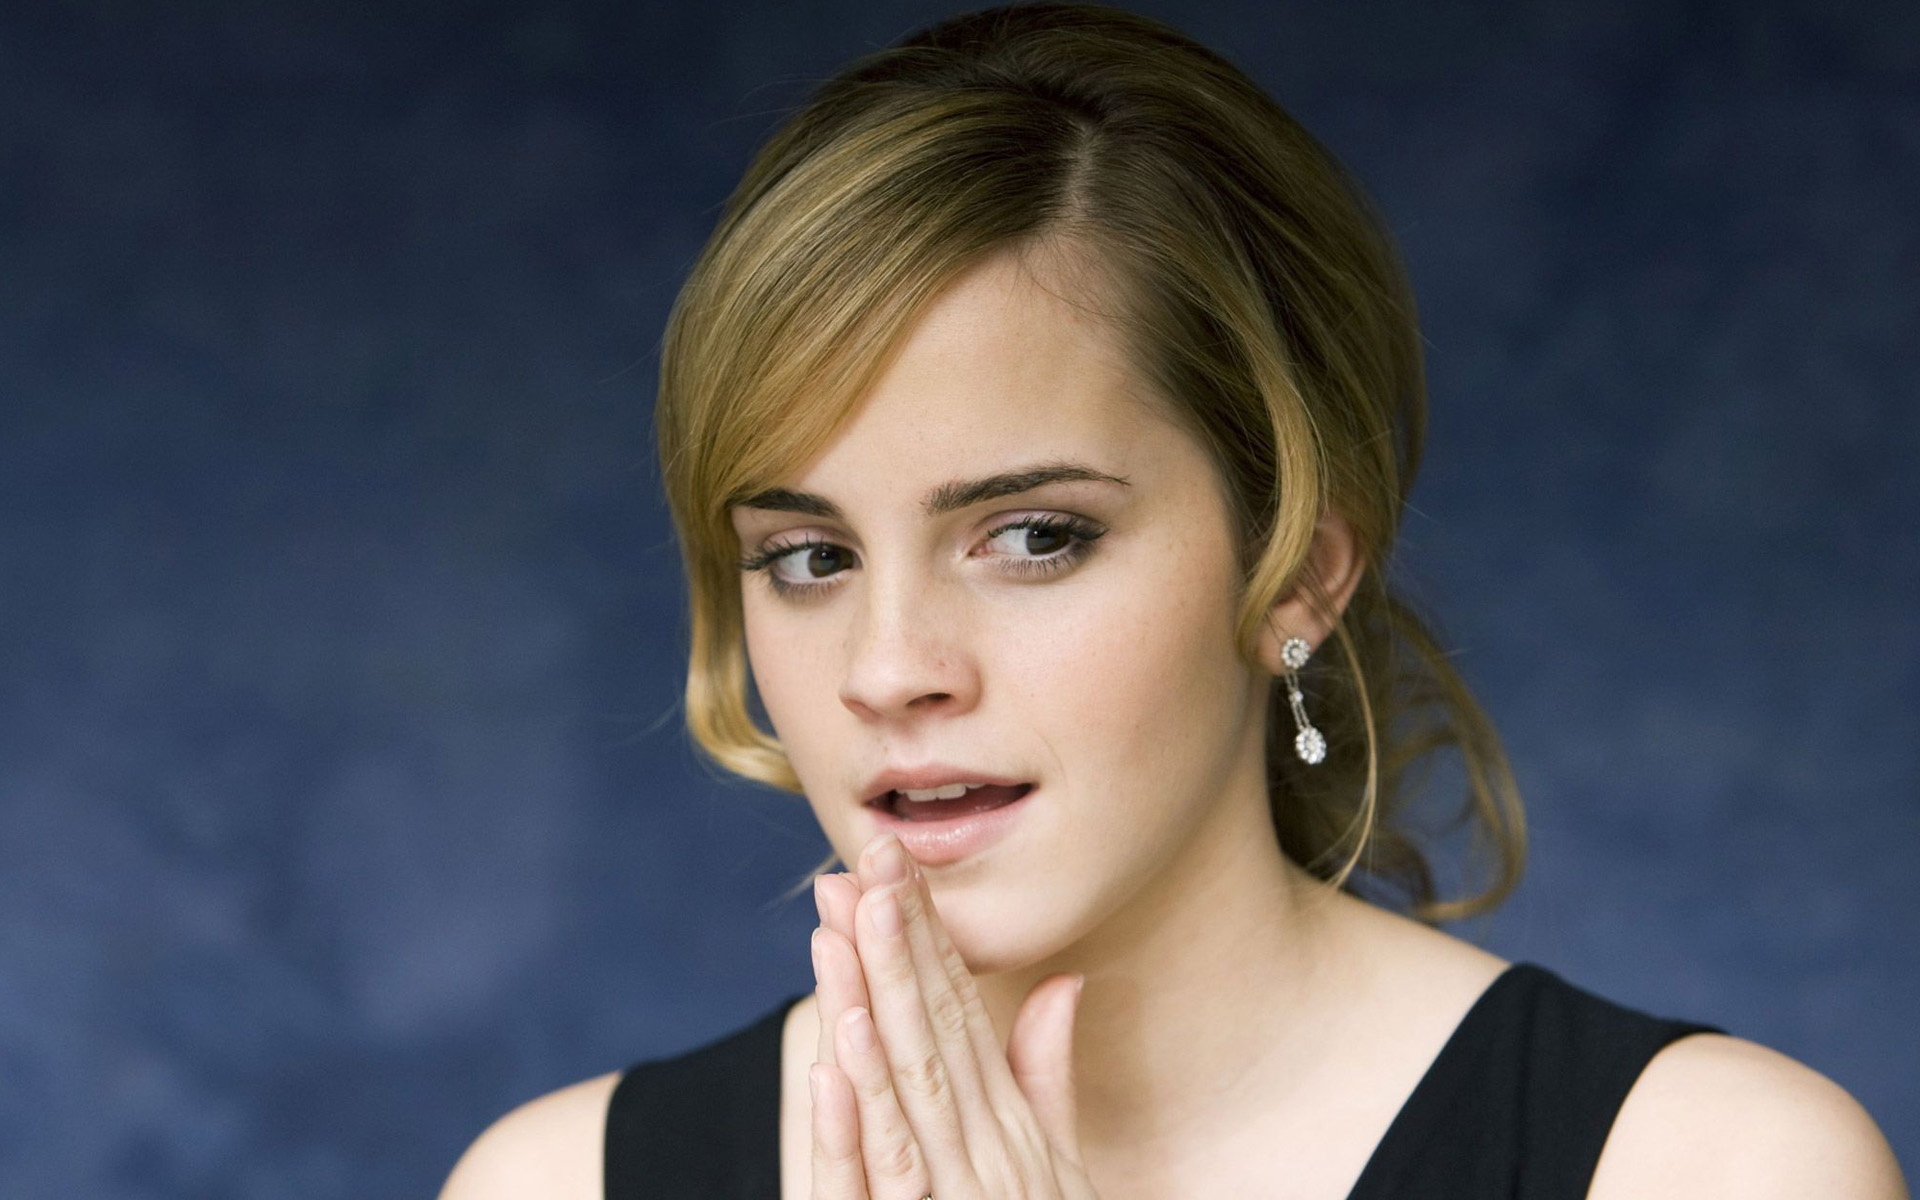 Emma Watson Thinking Wide Screen HD 804.47 Kb